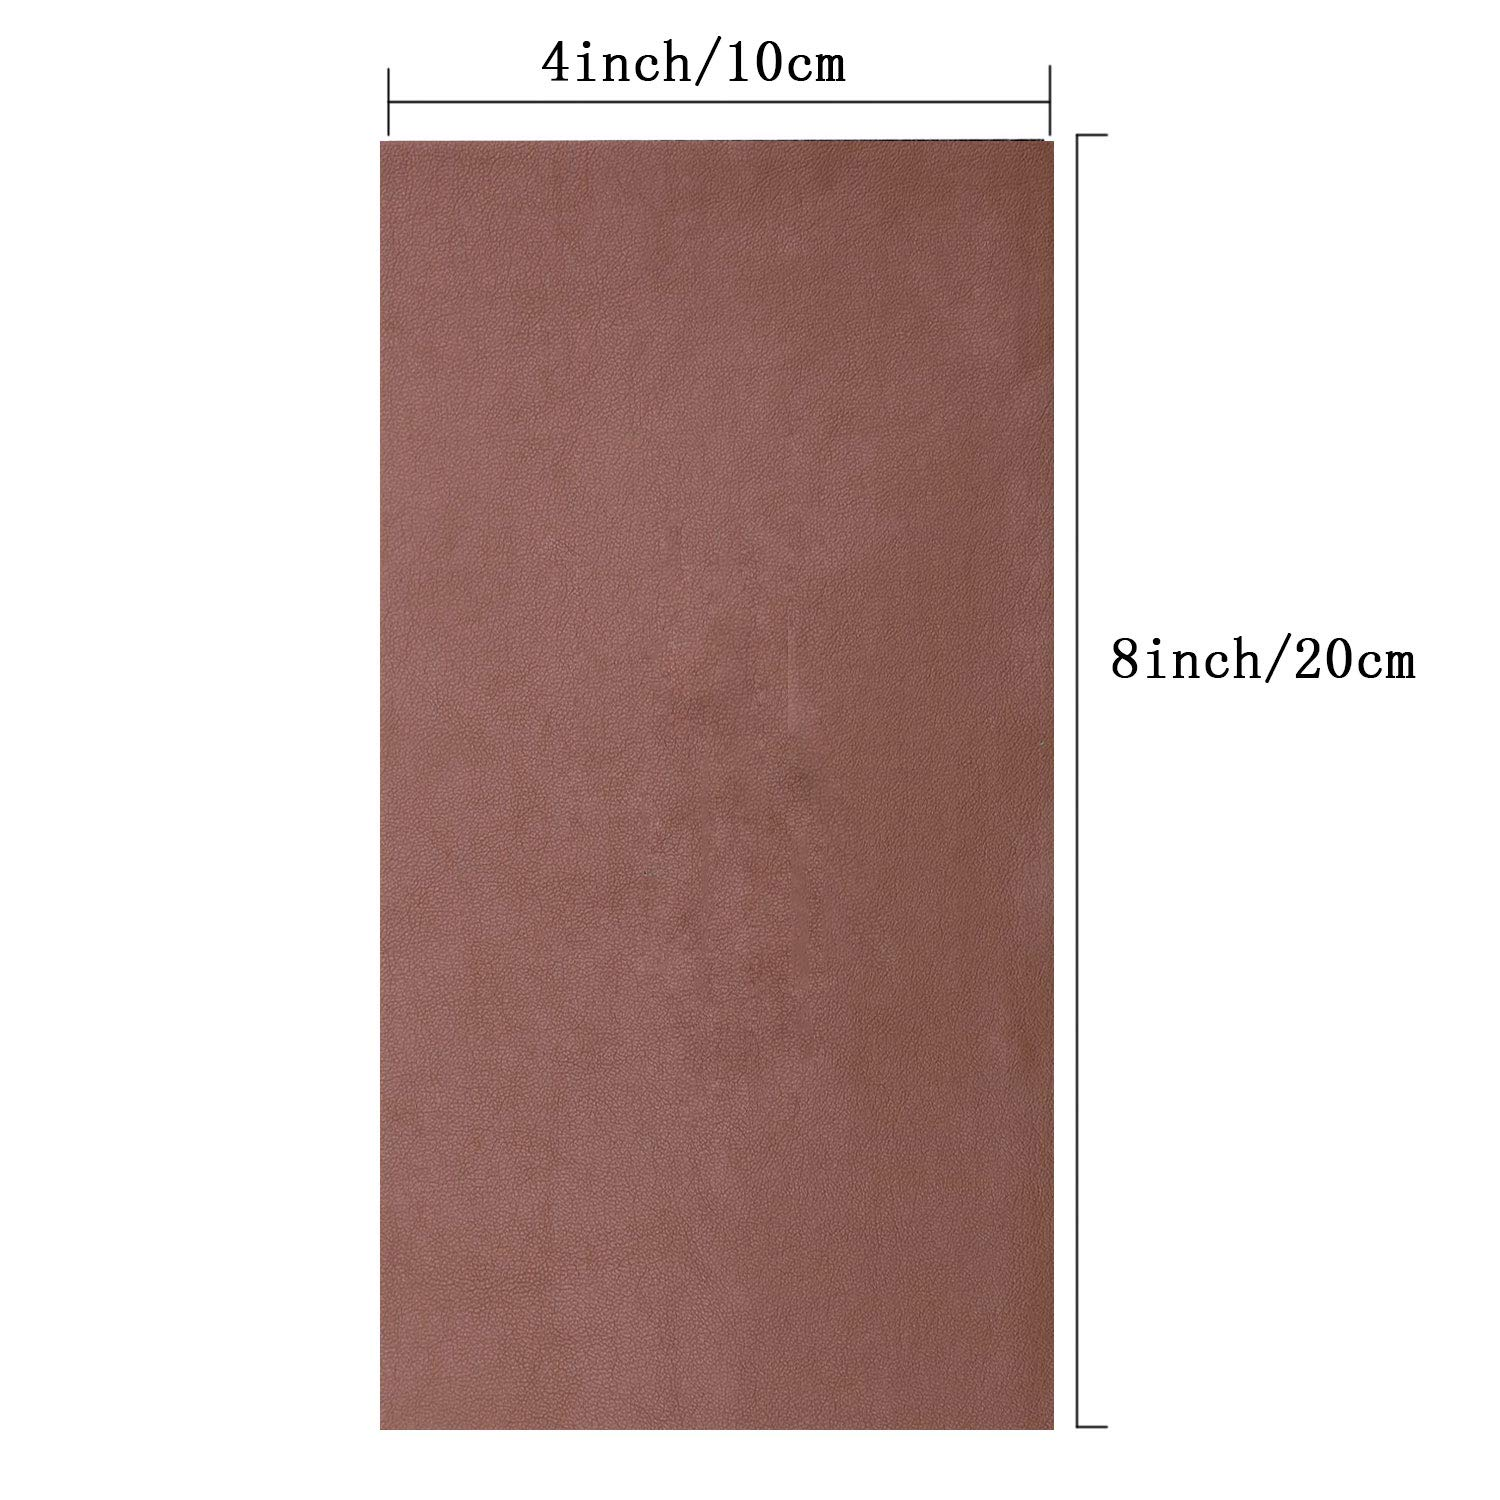 12 Pieces Leather Repair Patch Adhesive Backing Leather Seat Patch First Aid for Couch Furniture Sofas Car Seats Handbags Jackets,4x8 Inches Dark Brown